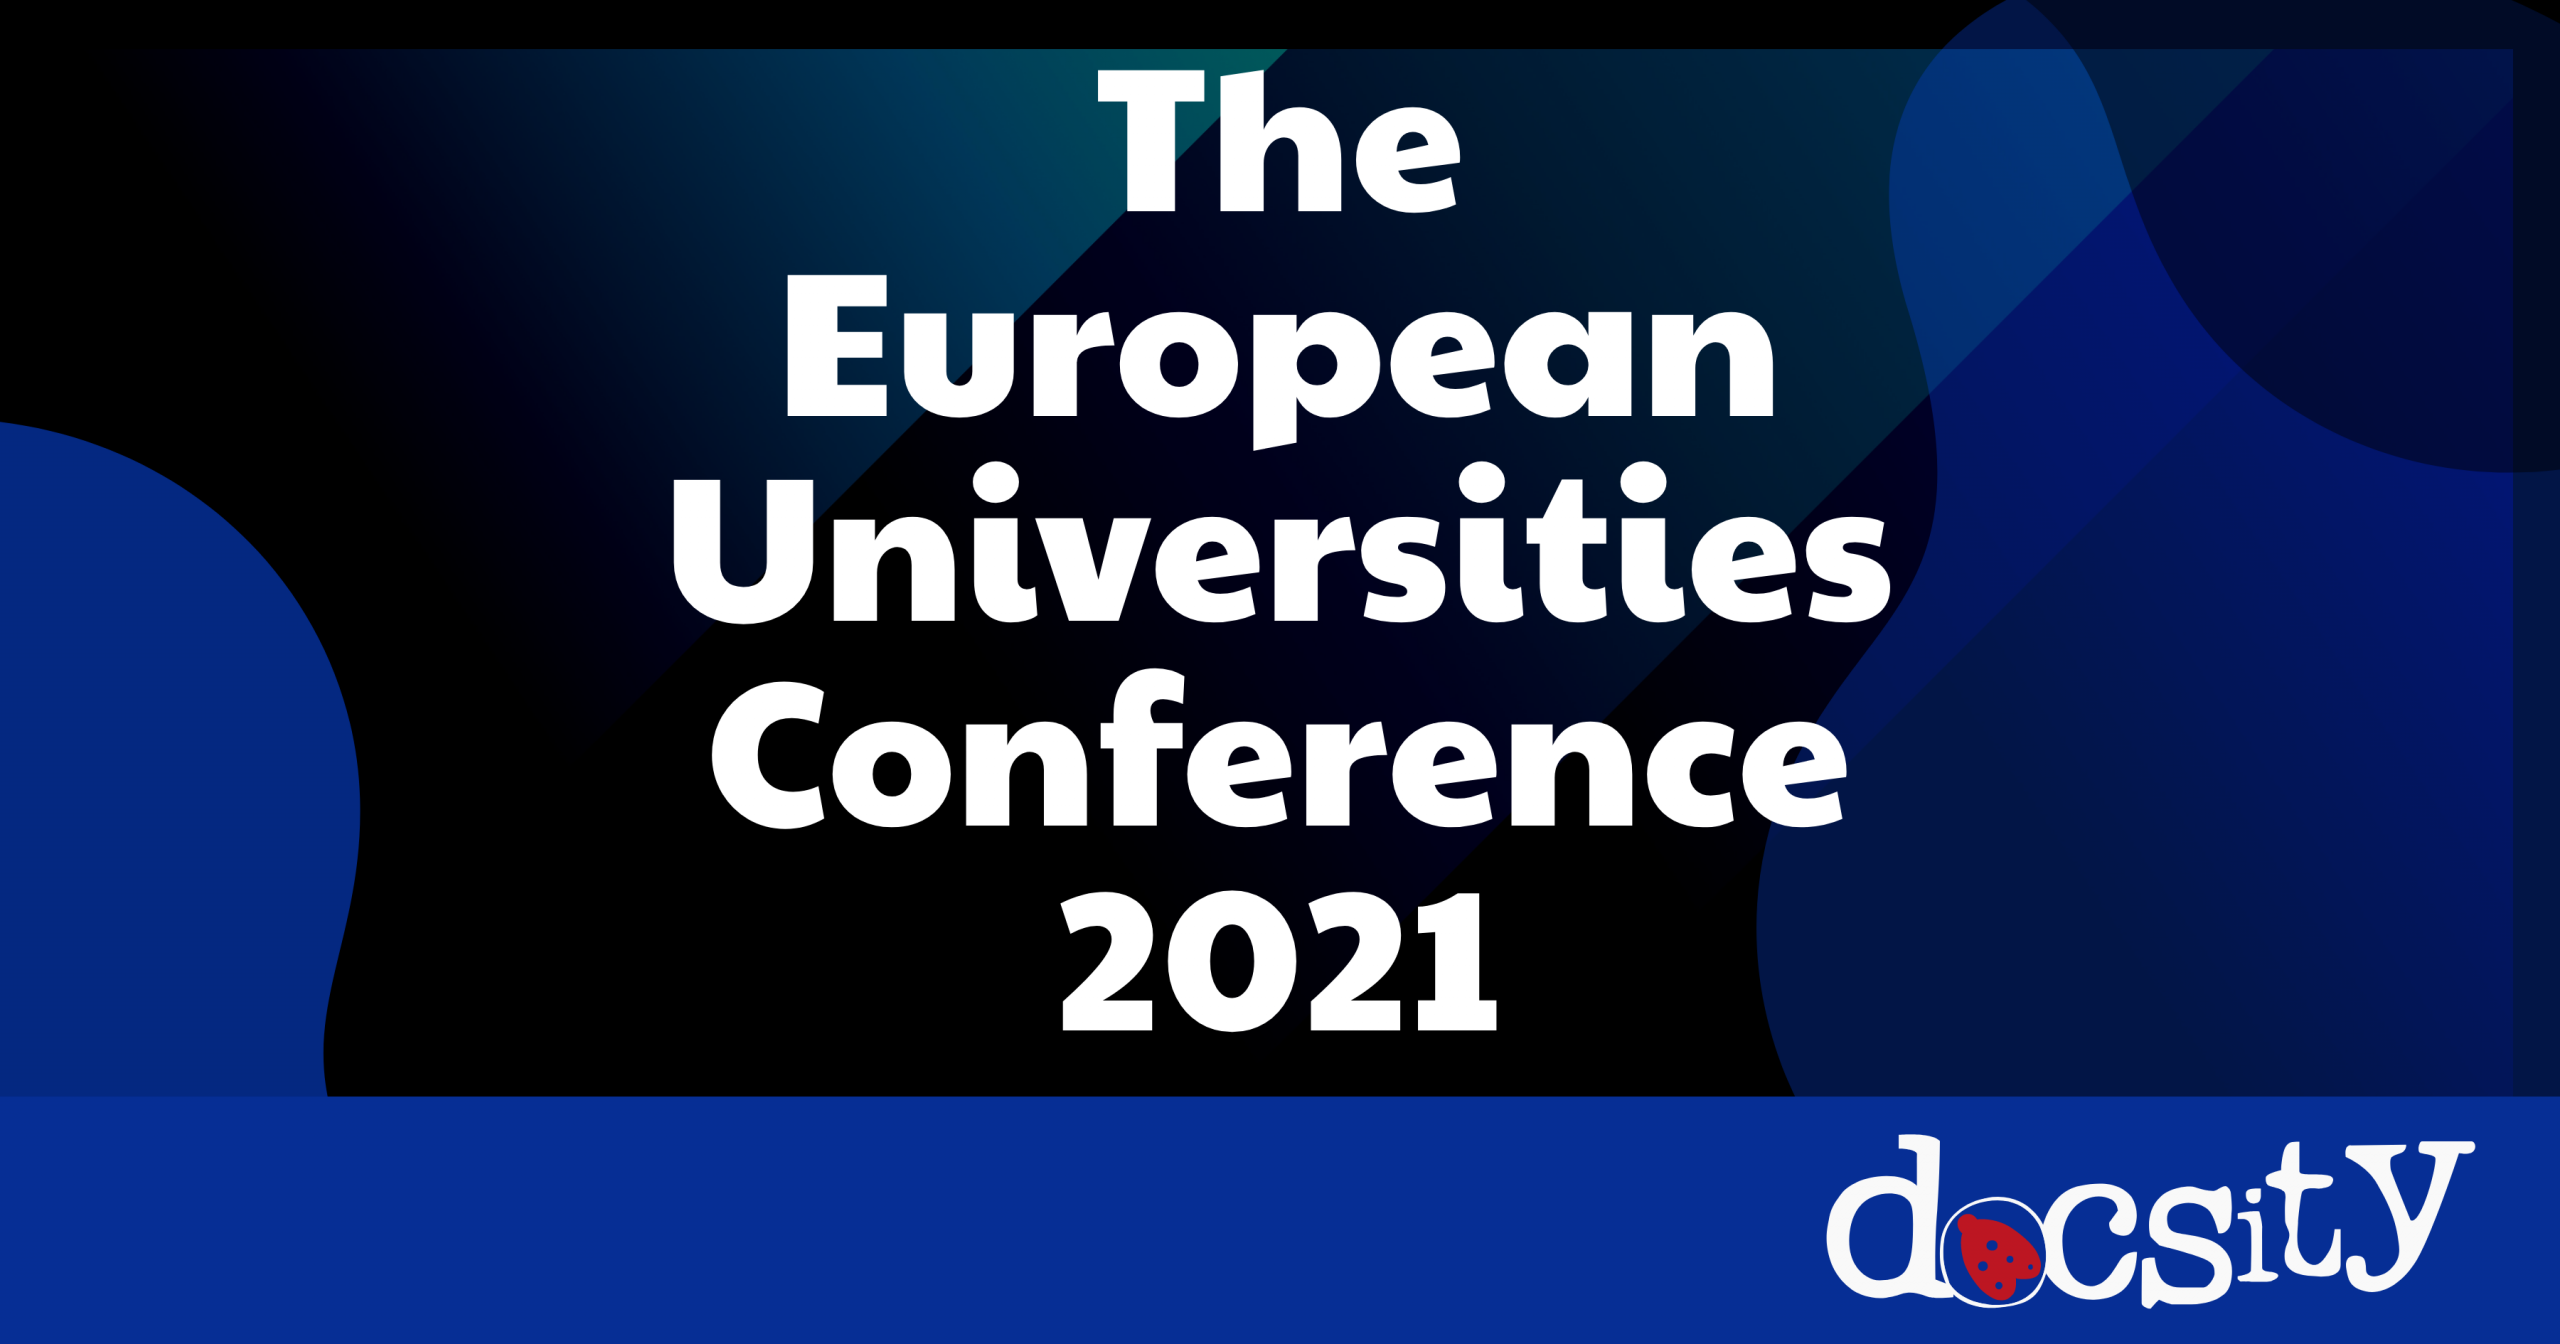 The European Universities Conference 2021